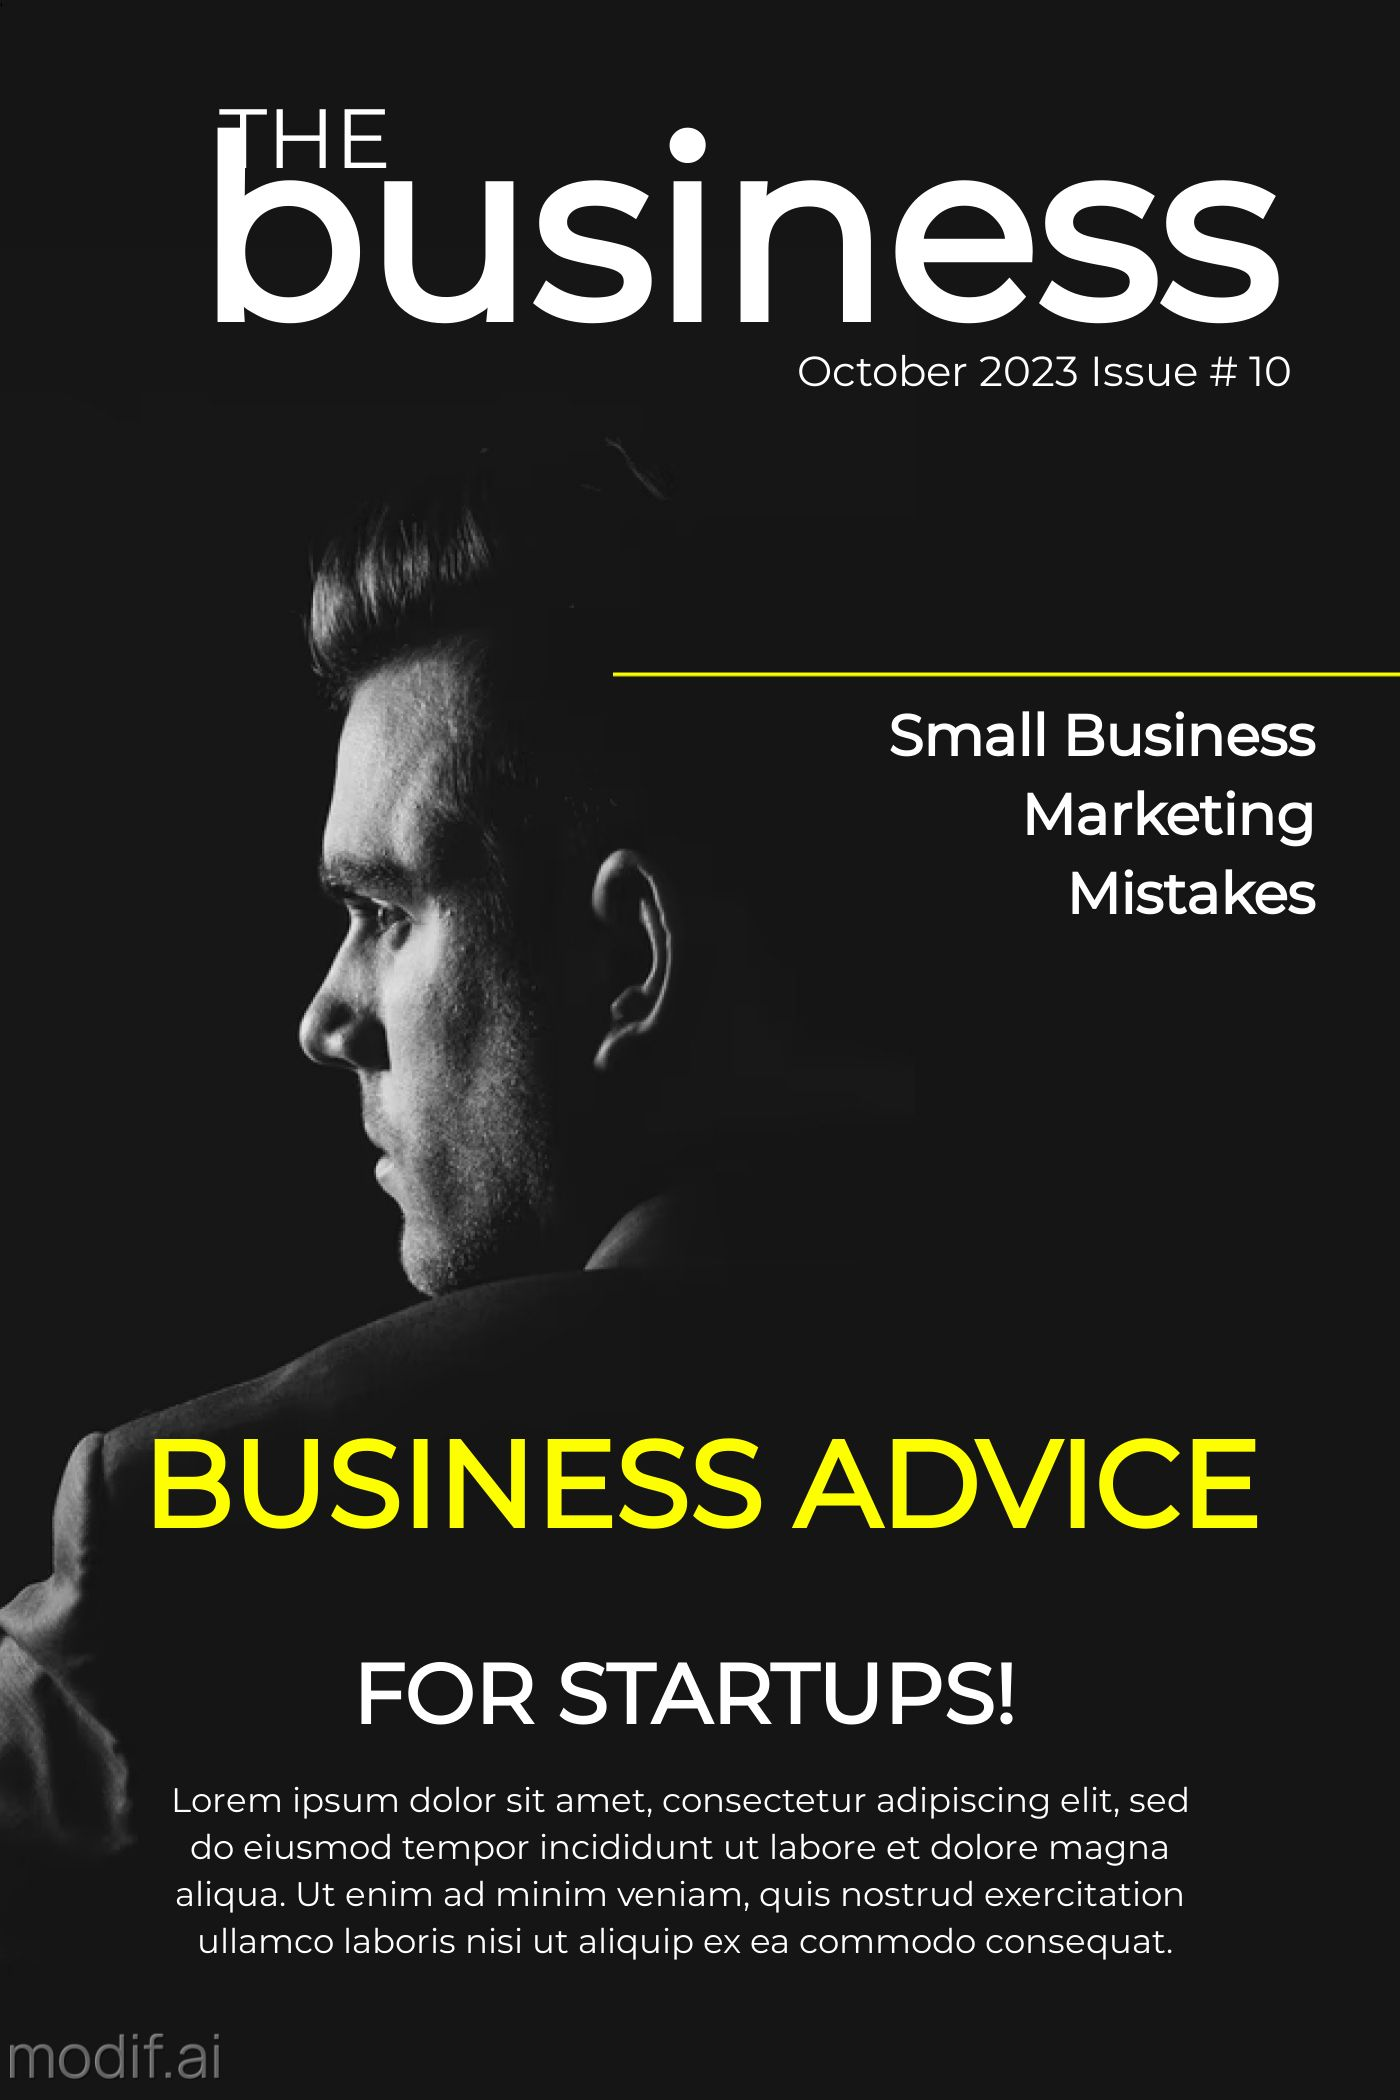 The Business Magazine Cover Template